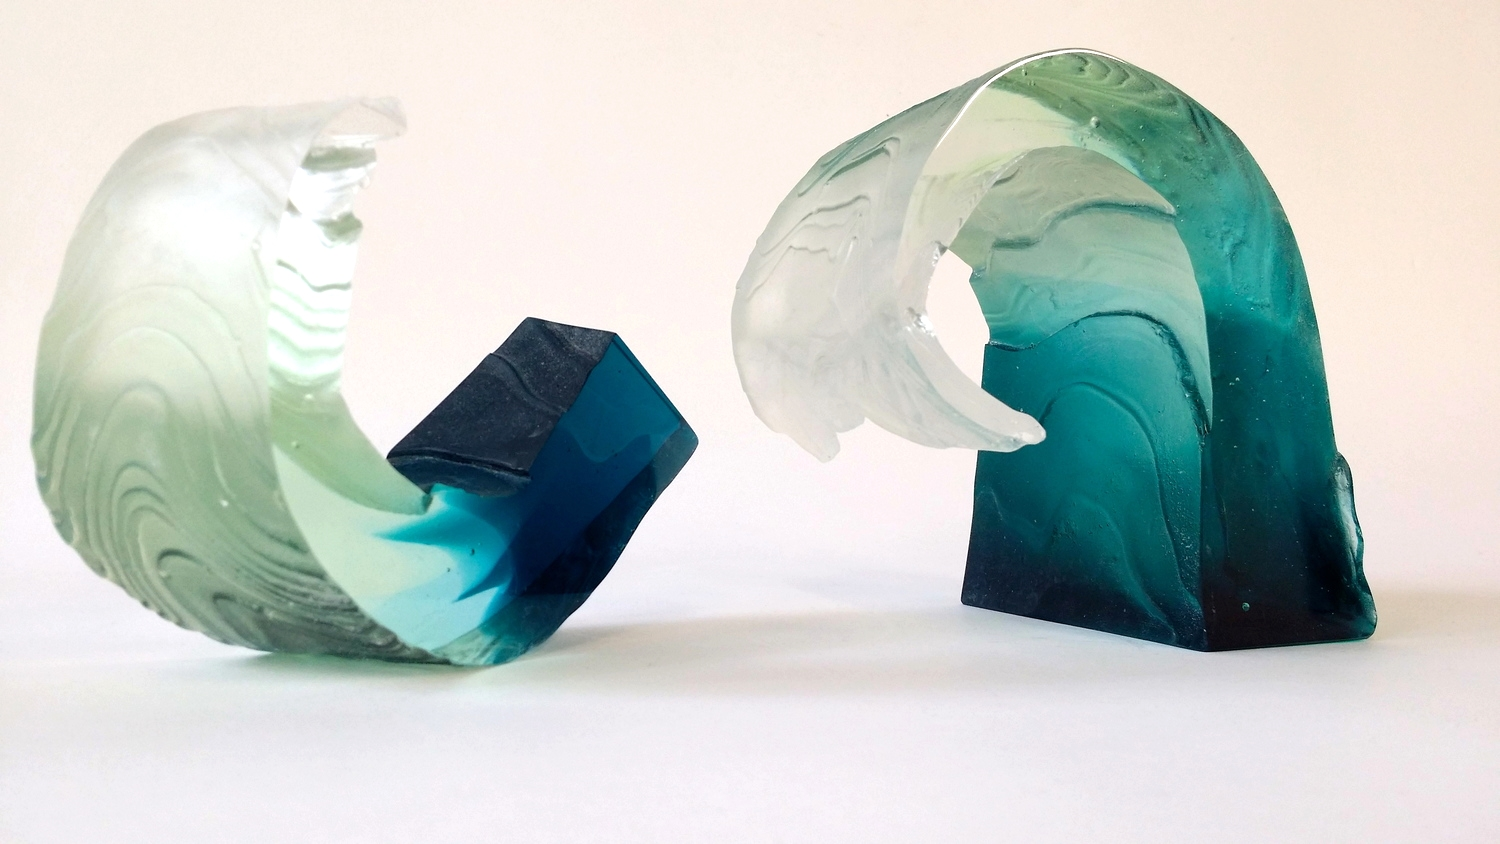 Layered sheets of textured wax curled and cast in Gaffer Glass.